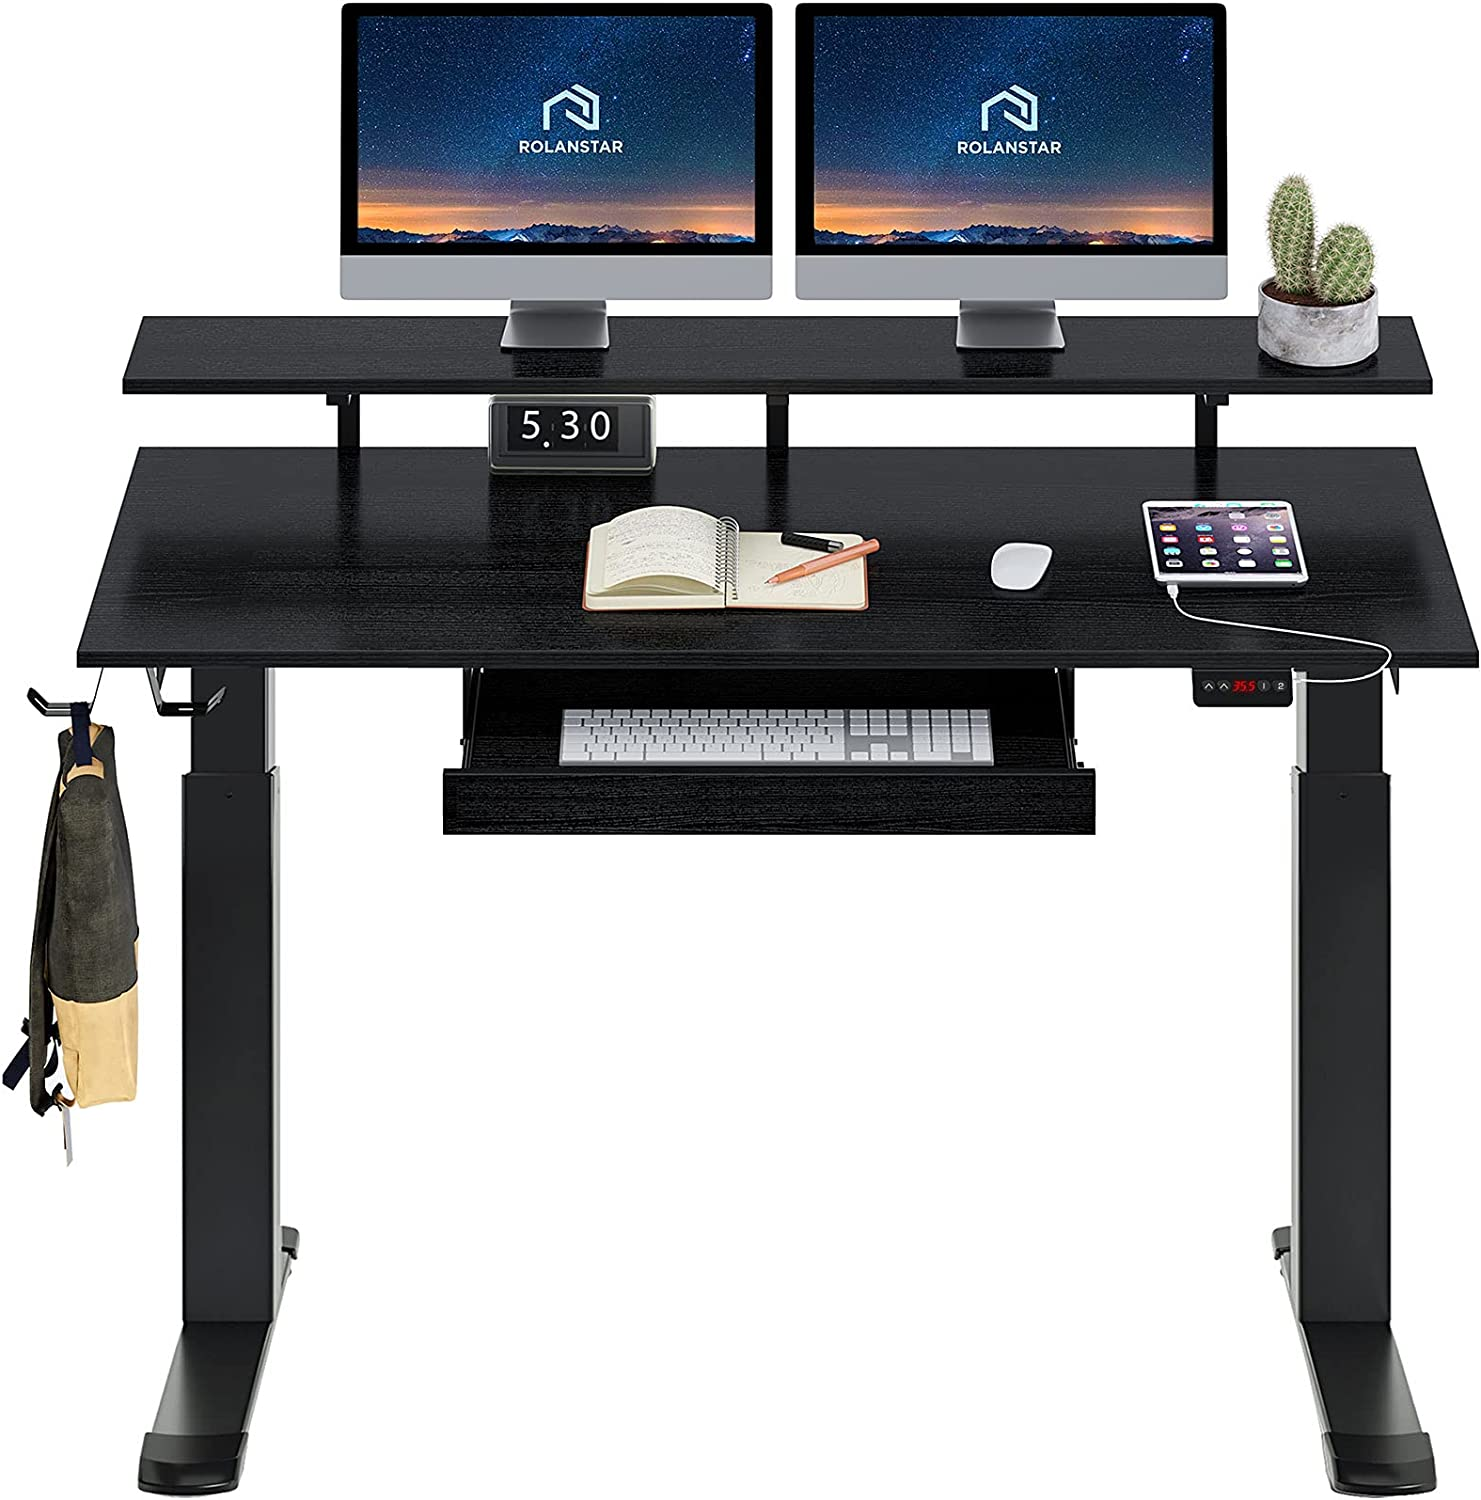 Rolanstar Standing Desk Dual Motor with USB Ranking TOP16 Charging Ports latest 55